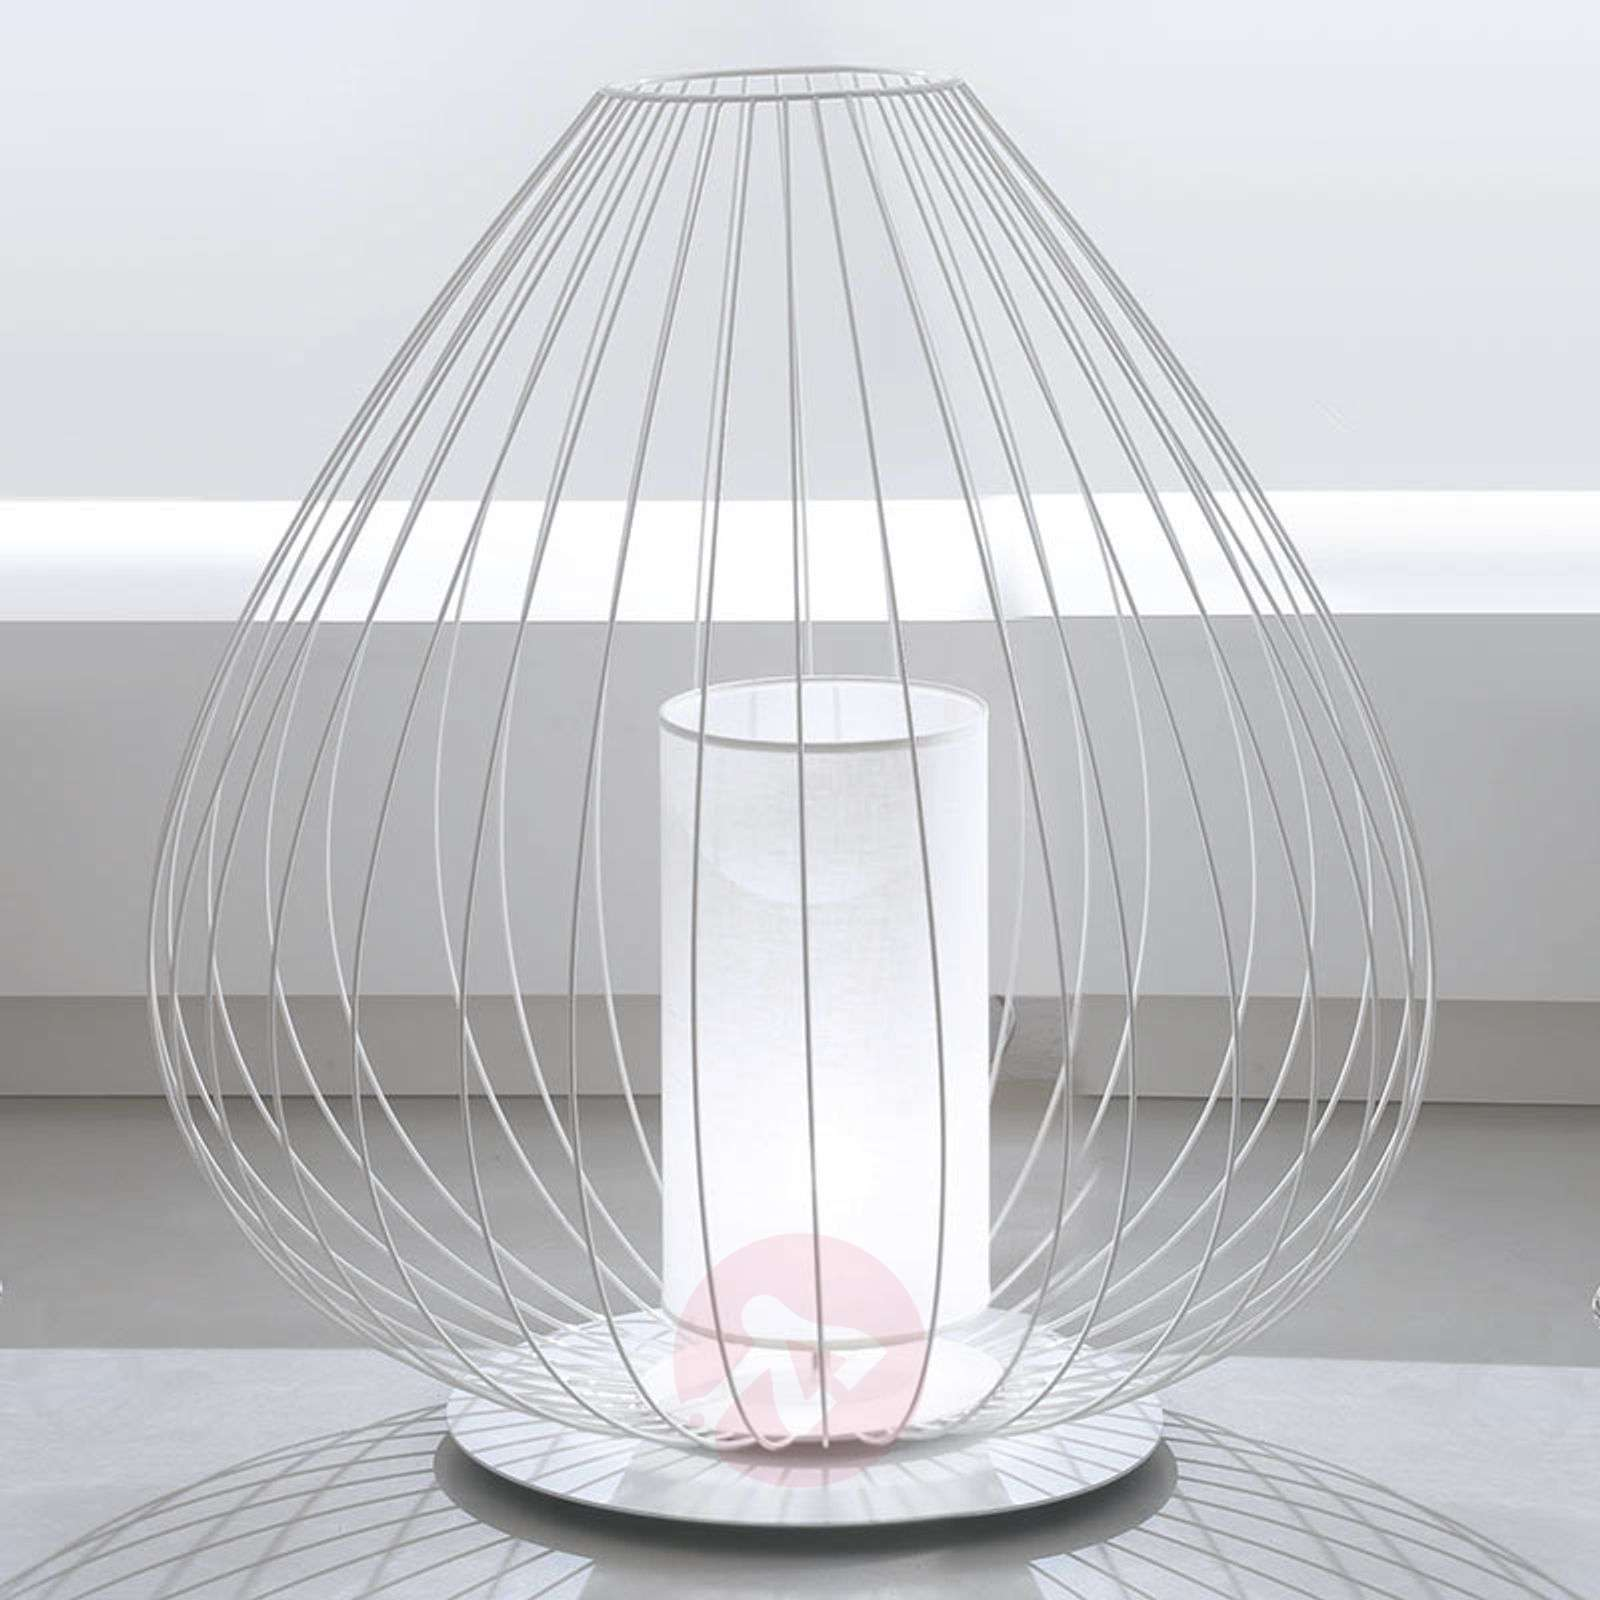 Karman Cell cage floor lamp-5542032X-01